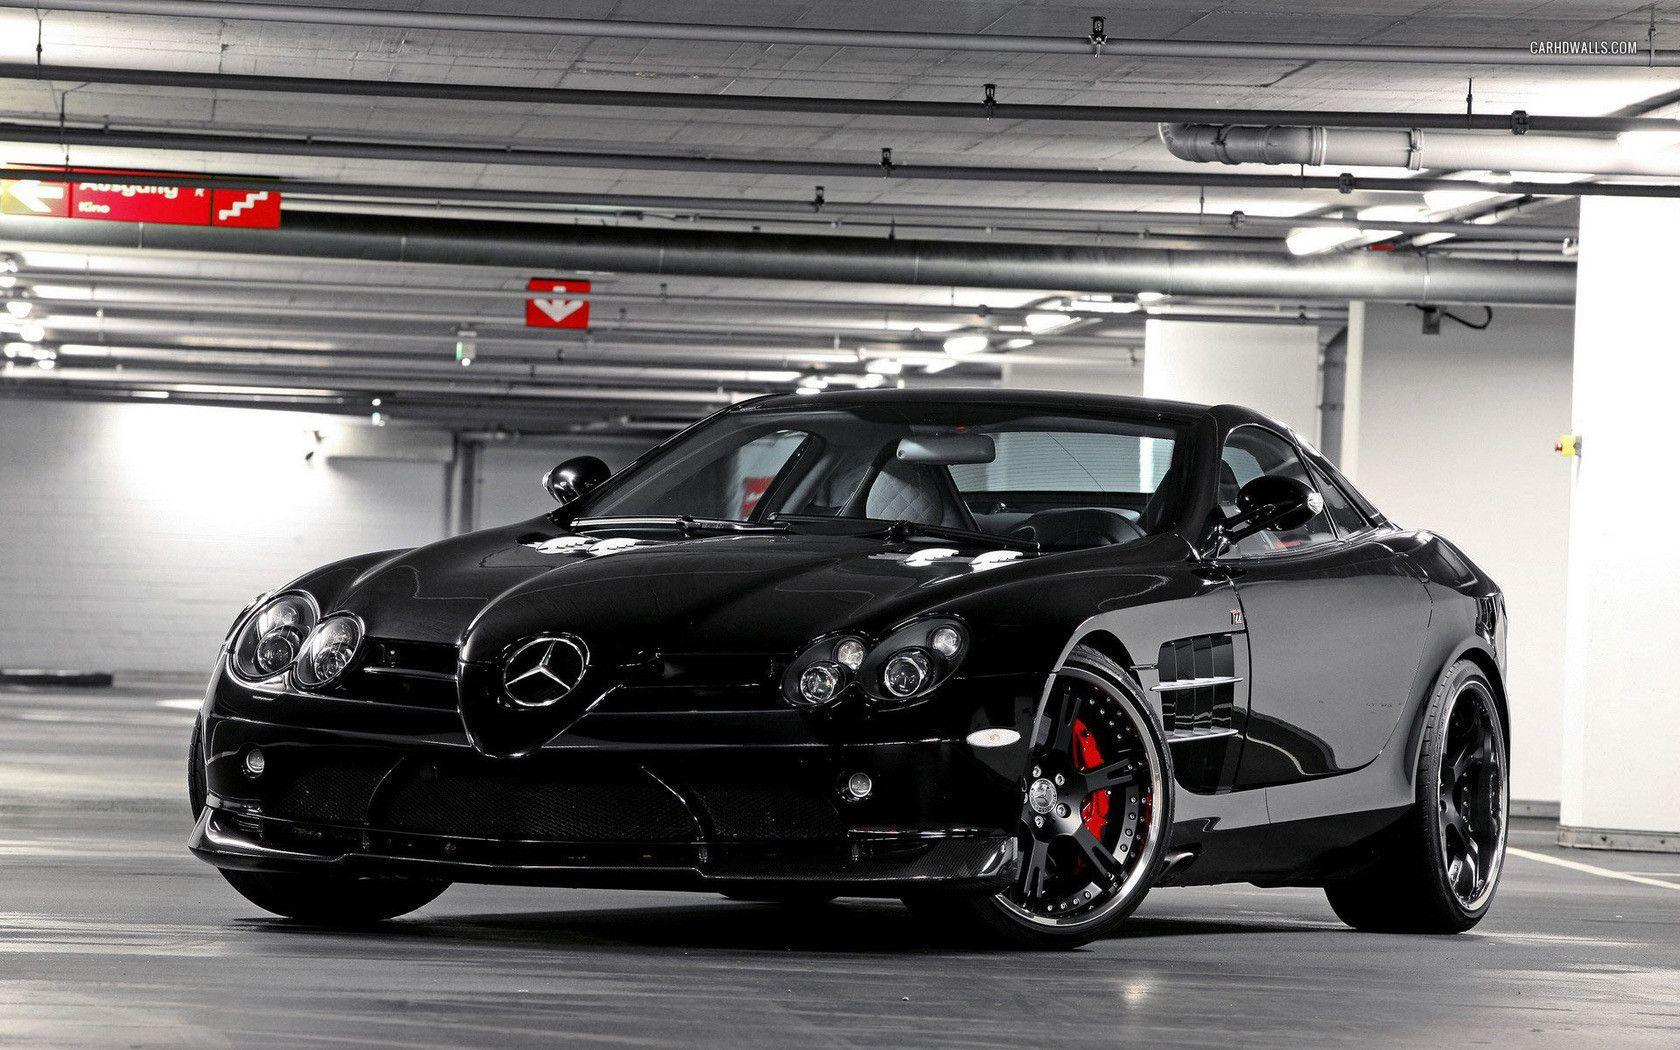 Mercedes-benz slr photo - 7